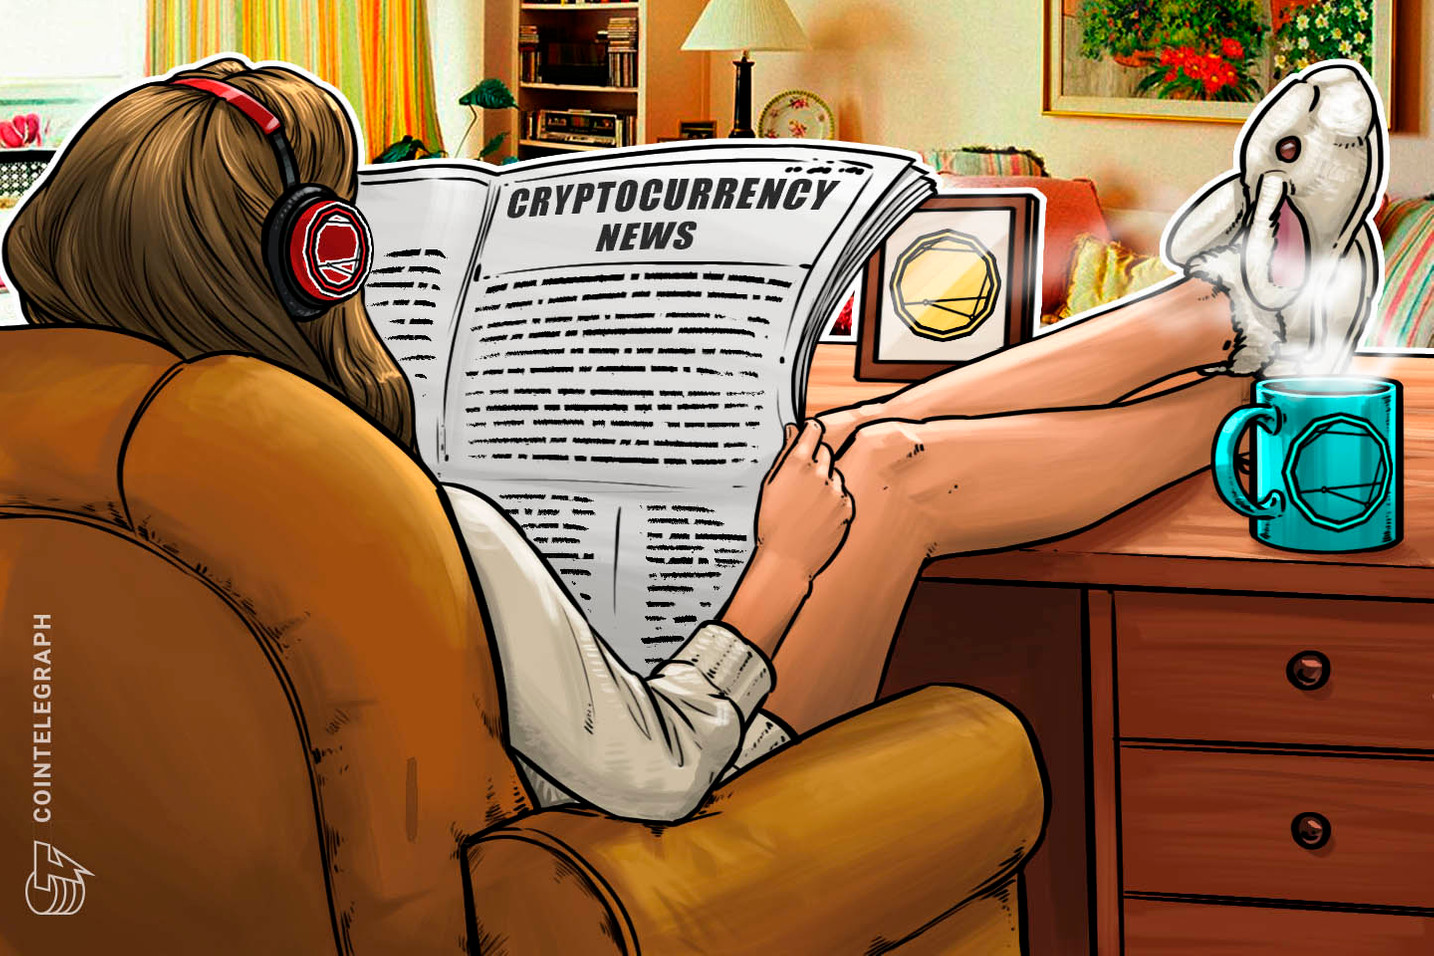 UK Newspaper The Independent Covers Bitcoin's Mid-Pandemic Bull Run